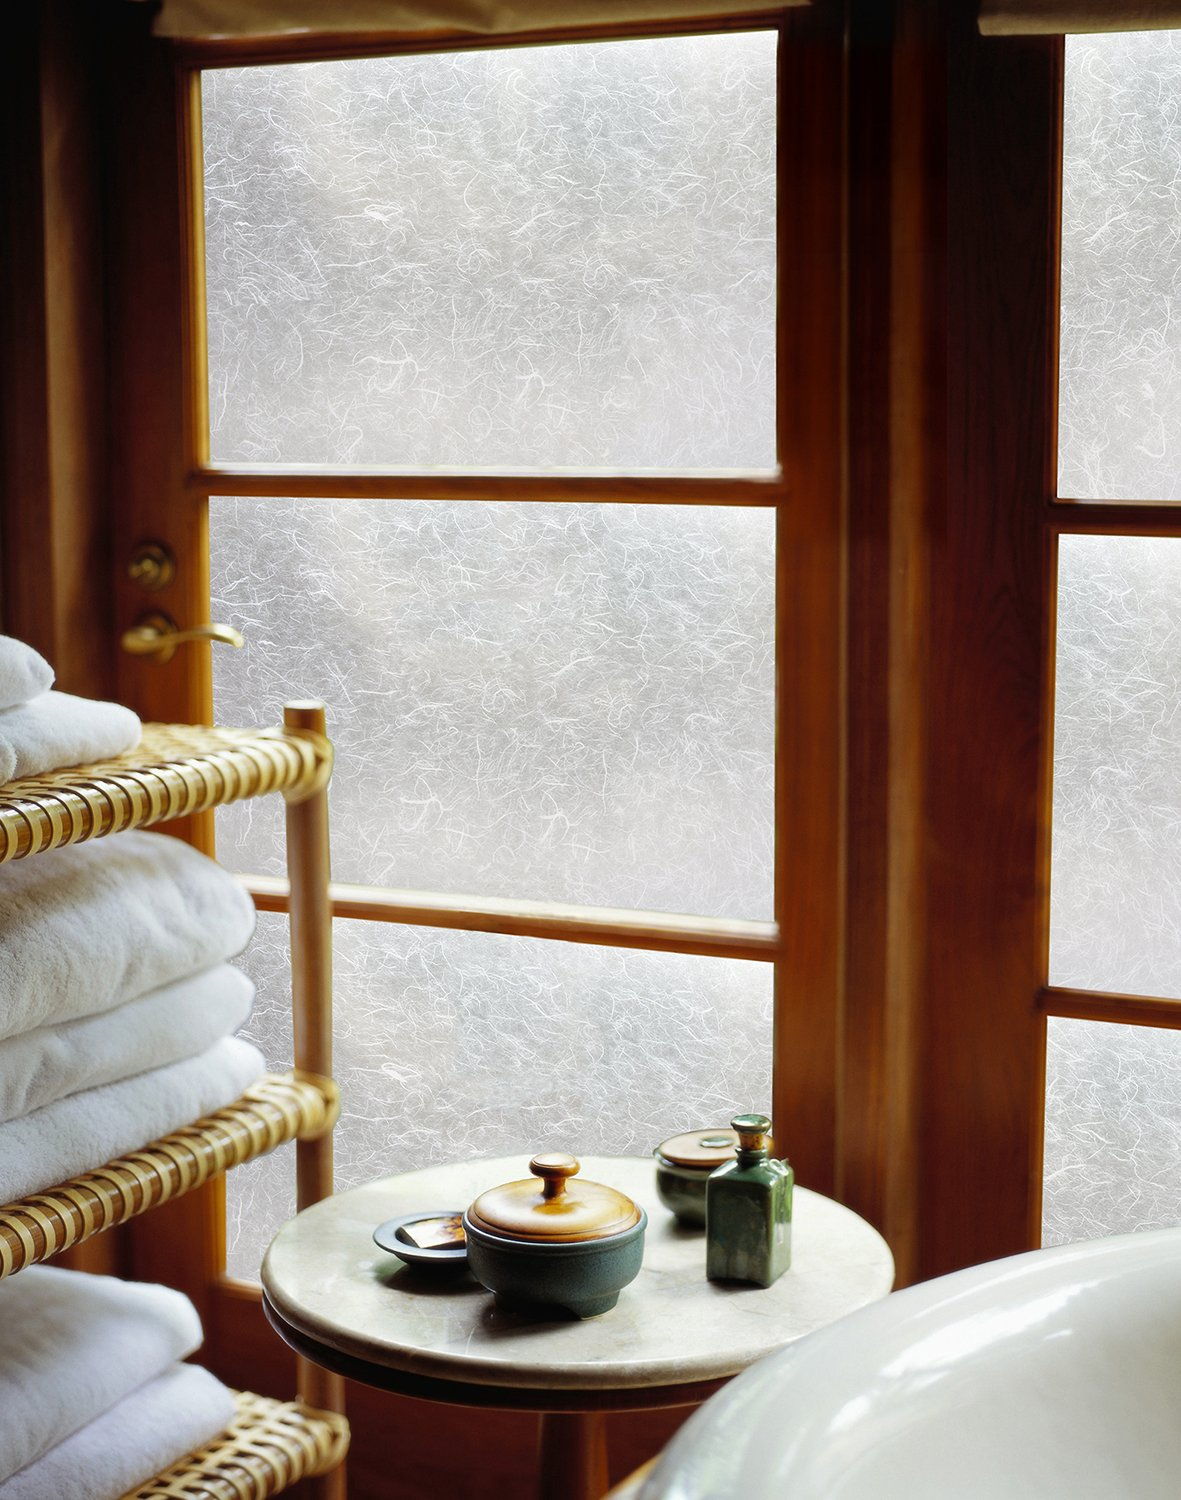 ARTSCAPE Rice Paper 36 in. x 72 in. Window Film, 36-by-72, Frosted by ARTSCAPE